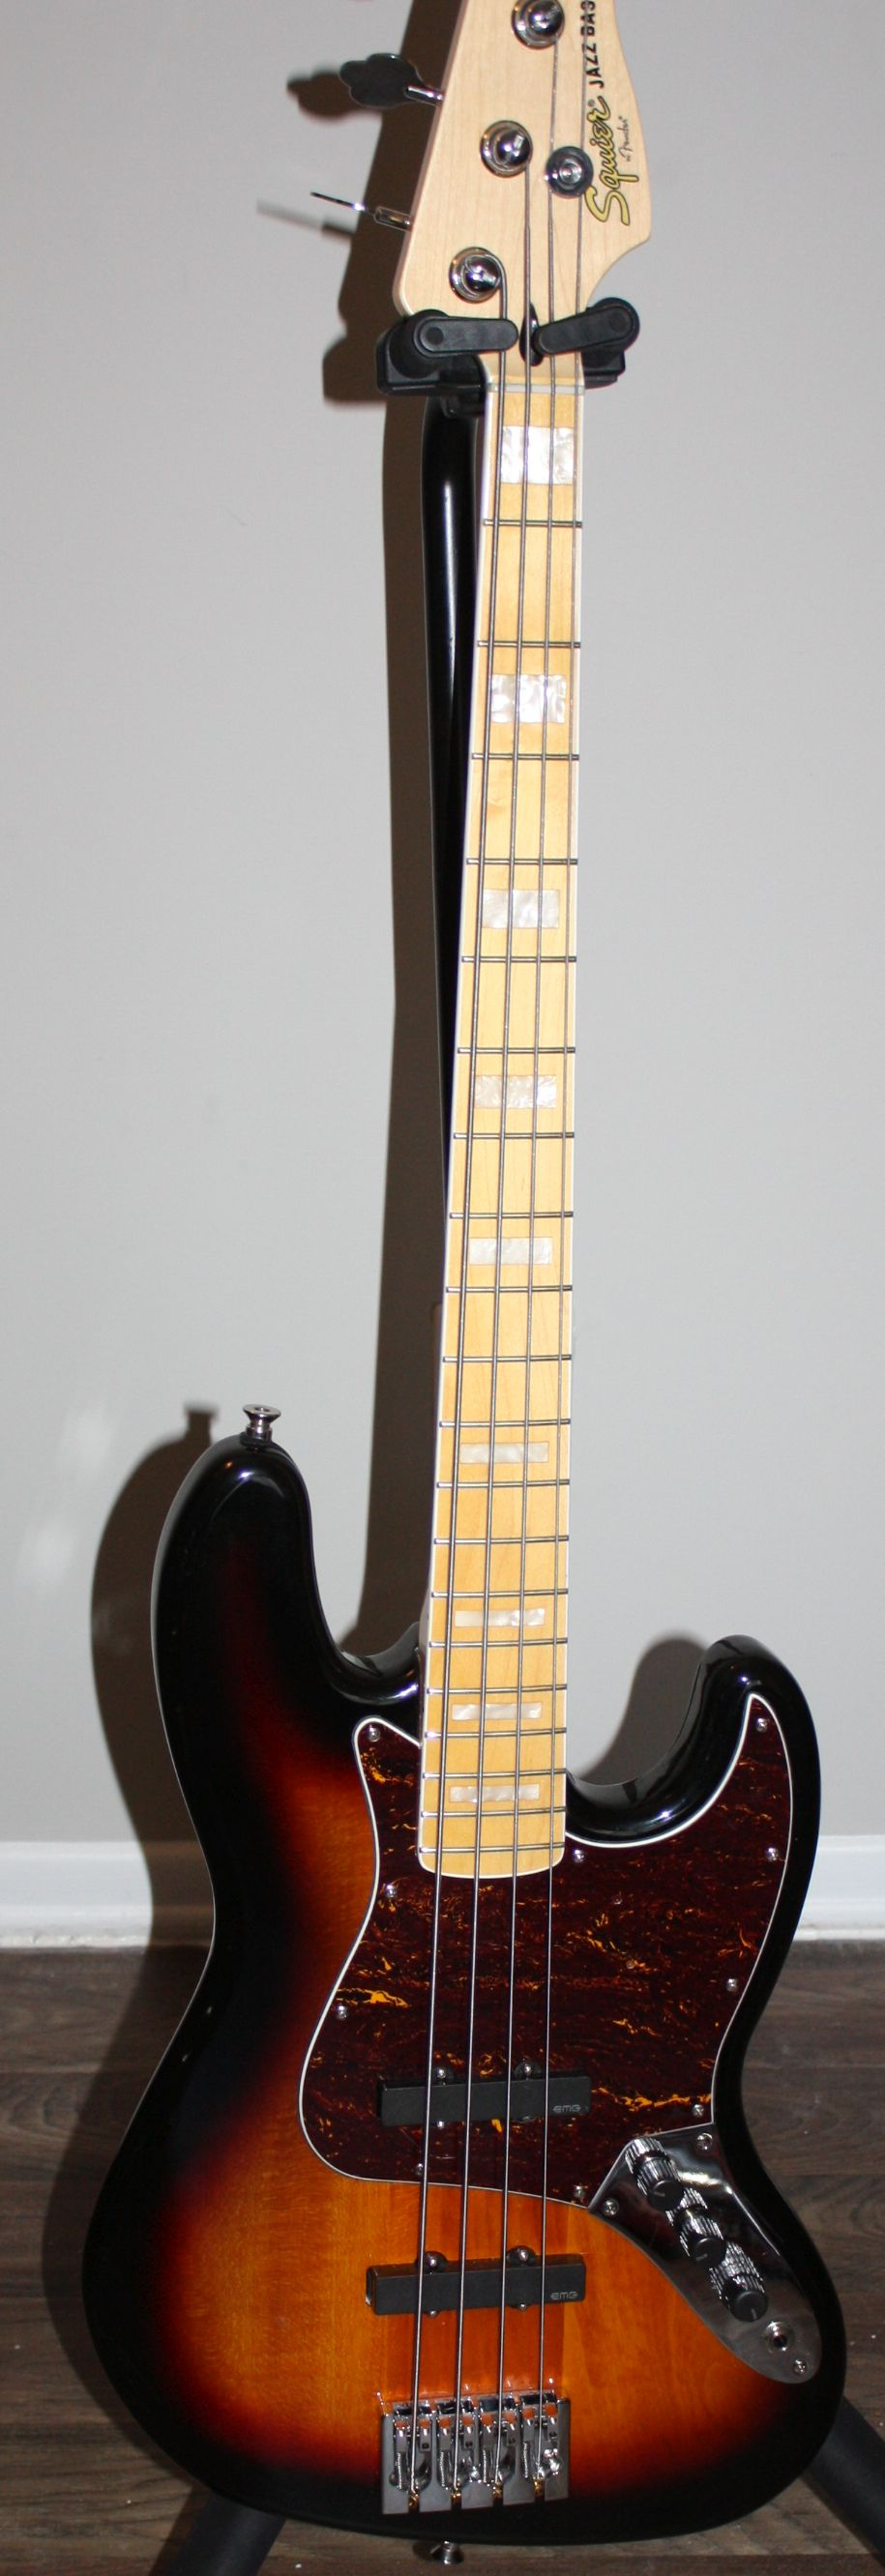 For Sale Squier Vintage Modified 77 Jazz Bass With Emg J Pickups And Hipshot A Style Bridge Talkbass Com